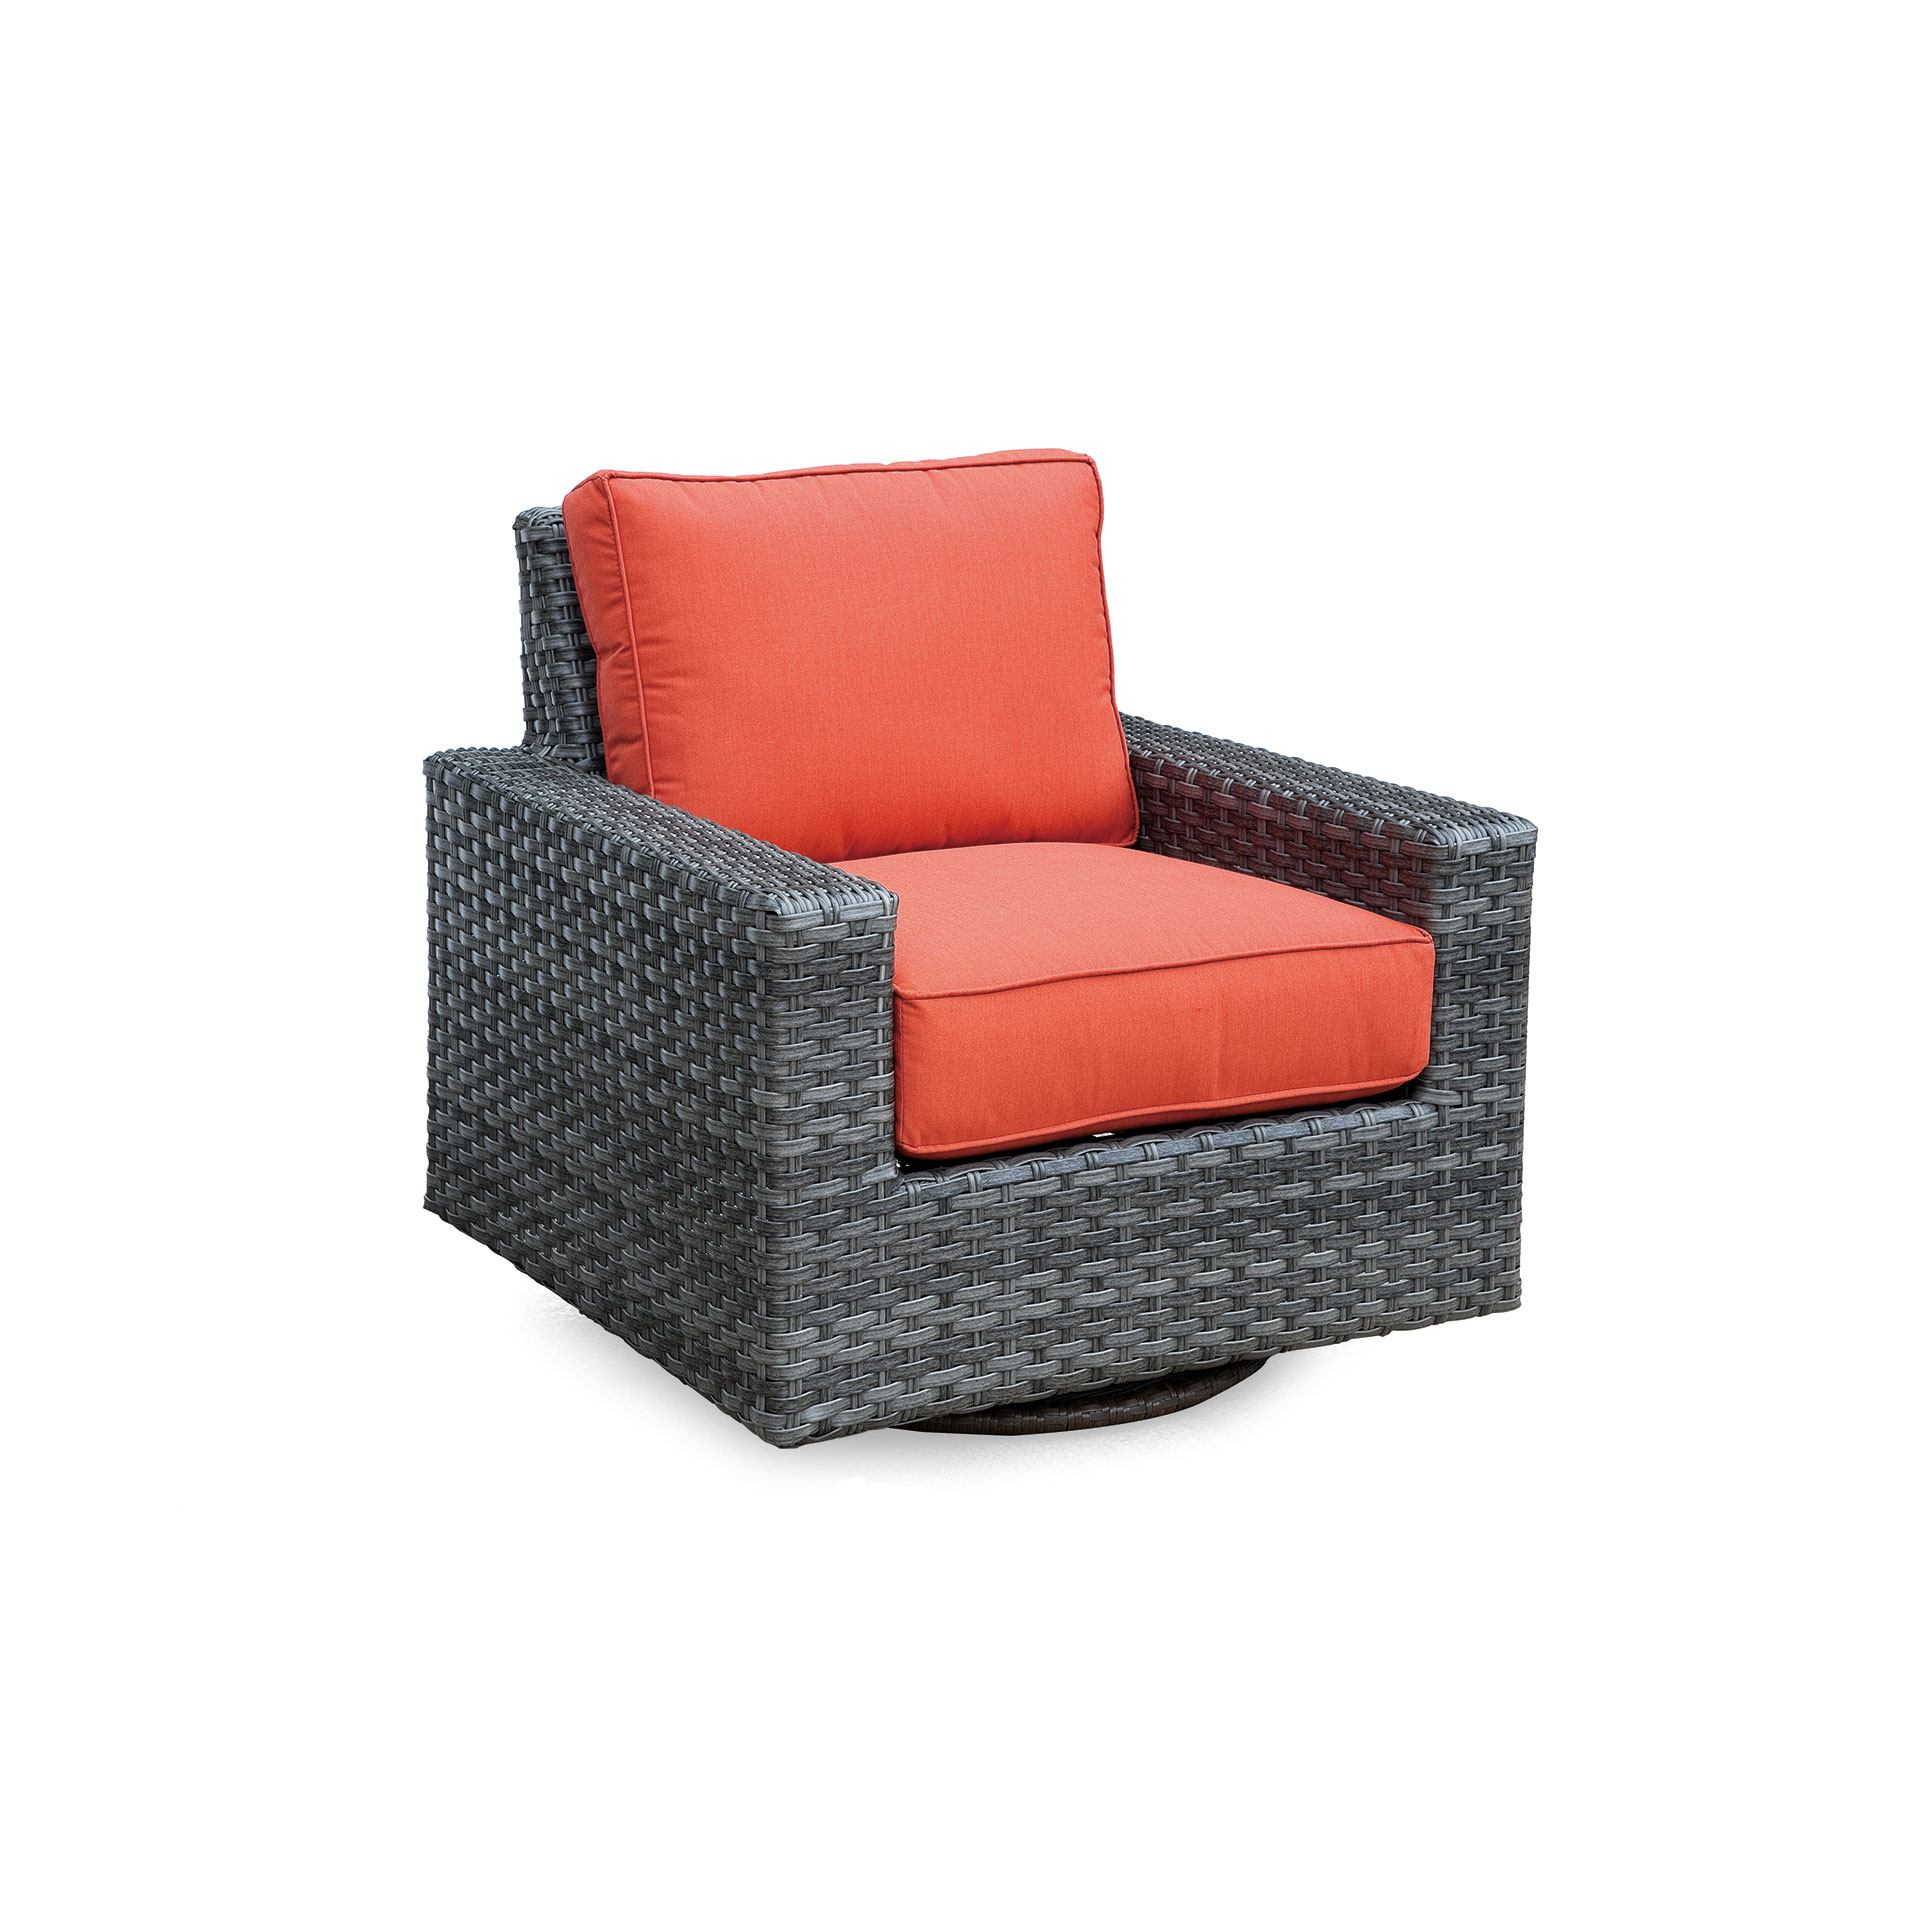 Erwin And Sons Santa Cruz Swivel Glider Chair Leisure Living